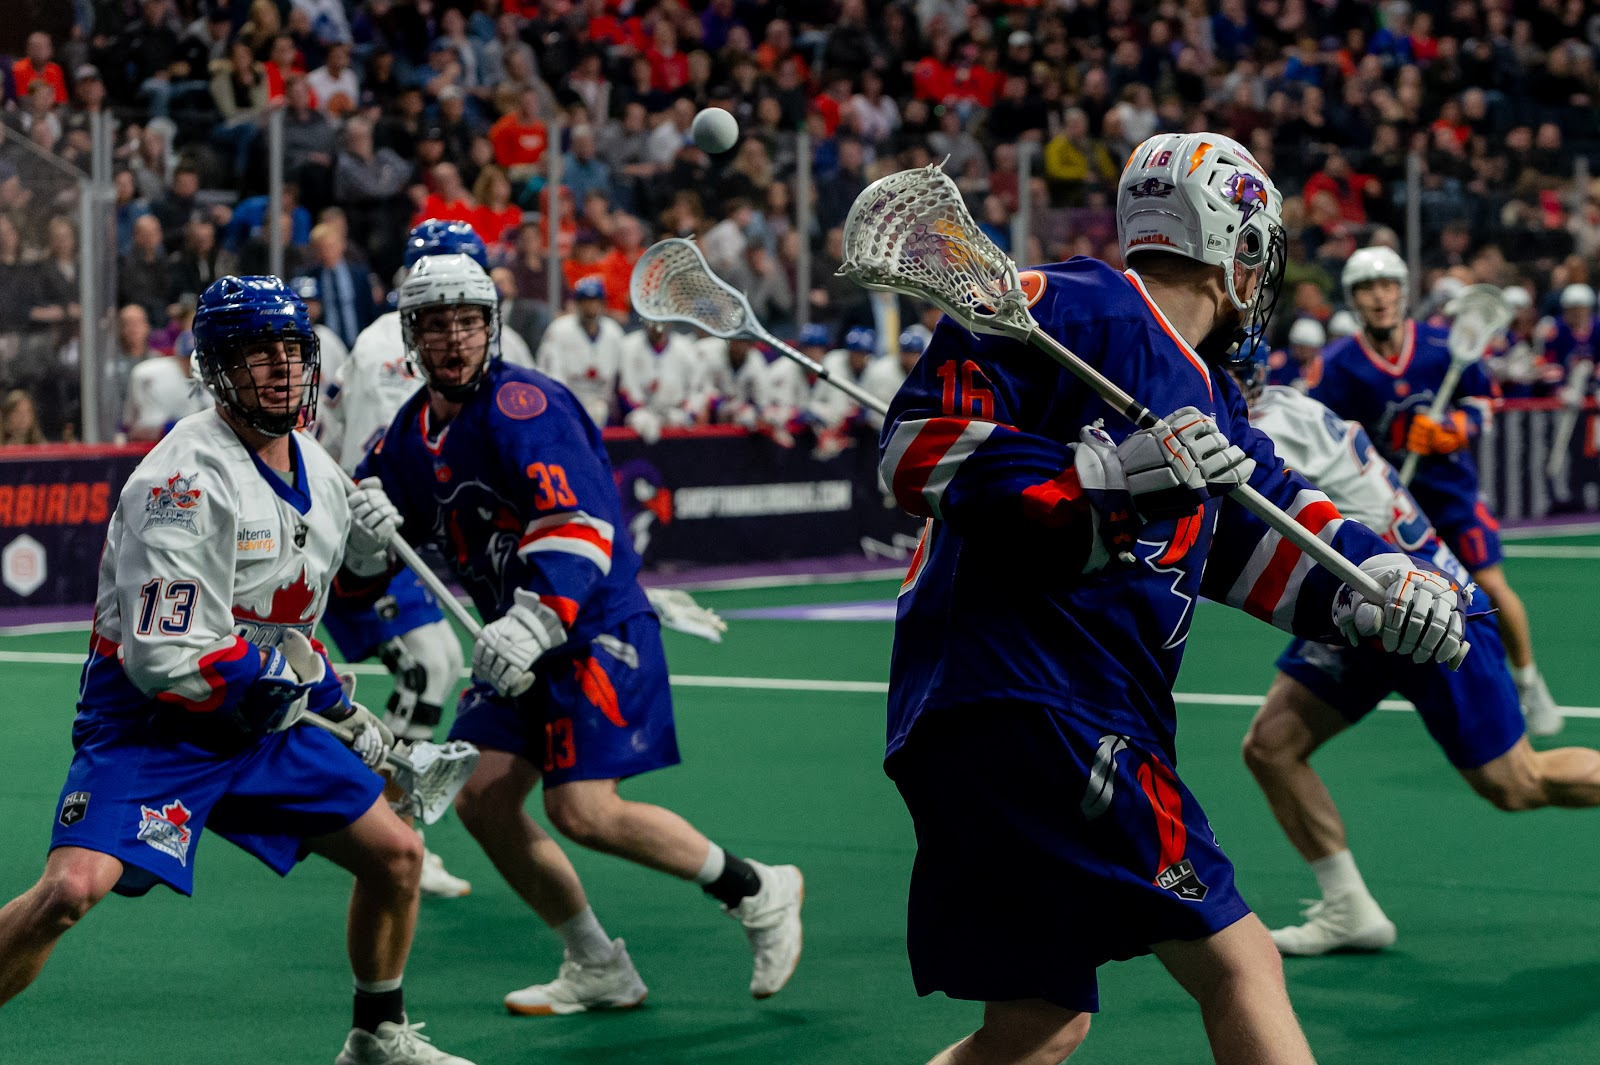 Pro lacrosse players in a game situation executing a give and go play